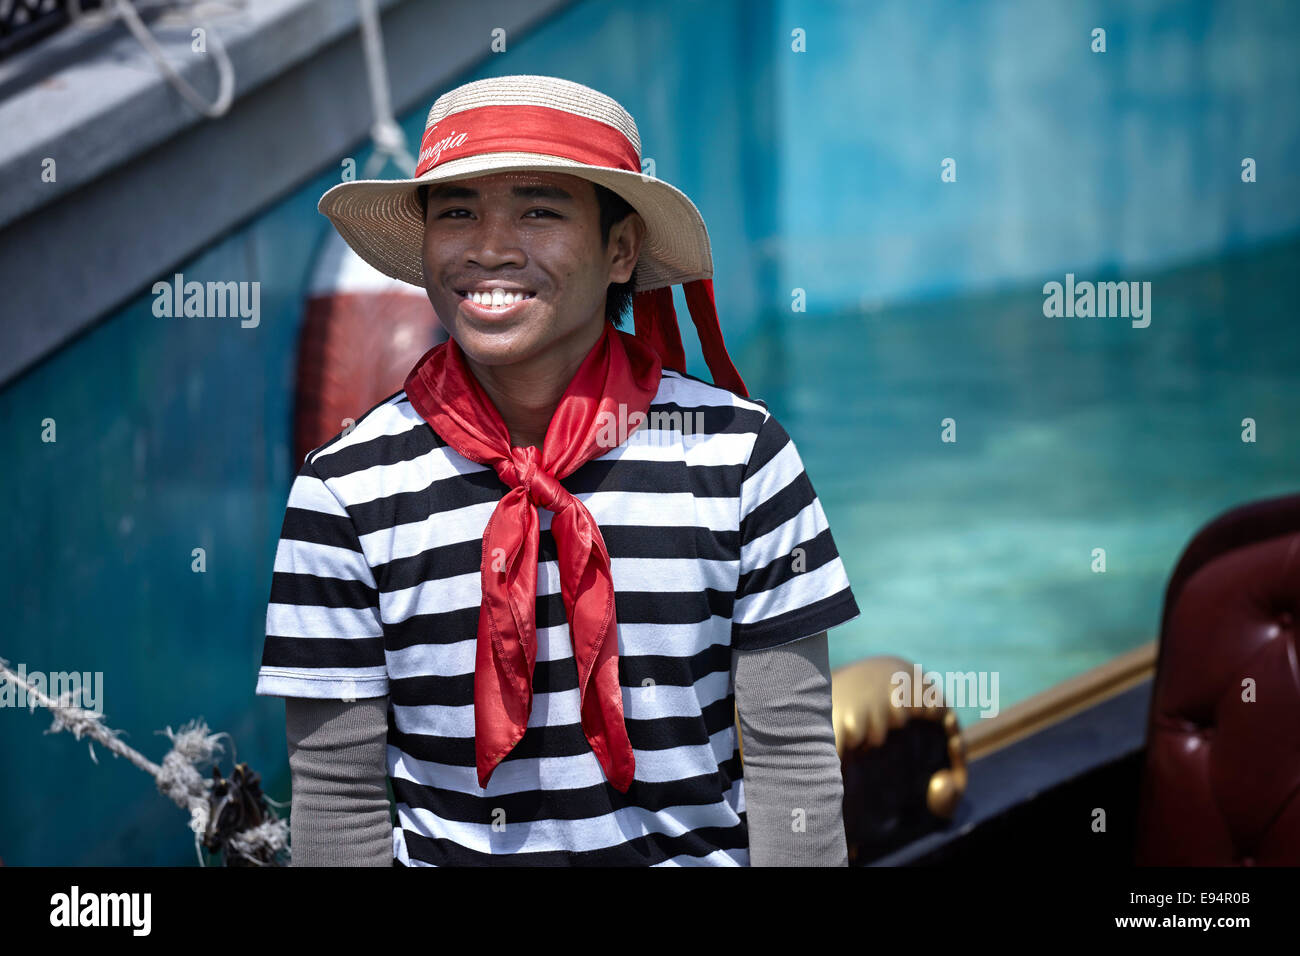 Smiling Gondolier in traditional attire. - Stock Image